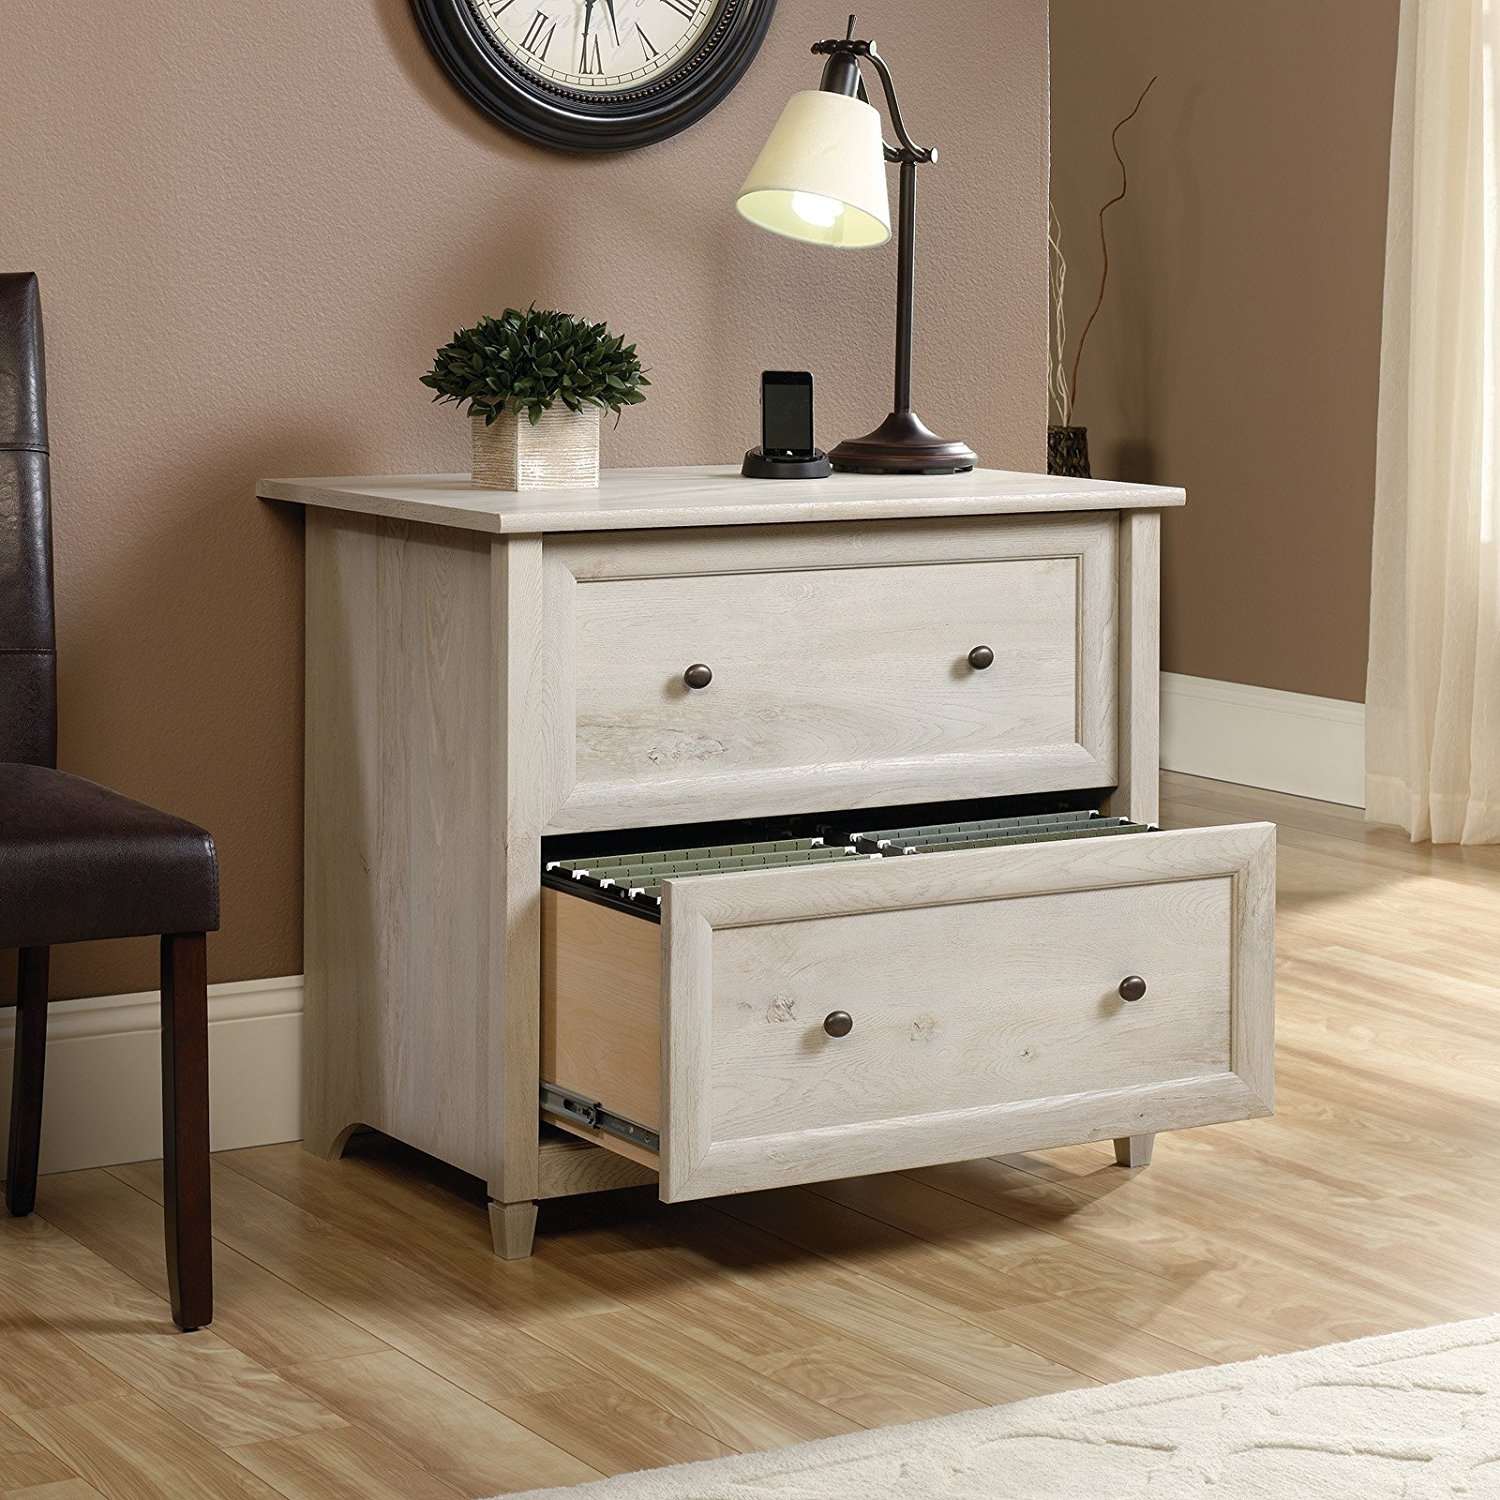 Sensational White Wood Lateral File Cabinet Madison Art Center Design Download Free Architecture Designs Intelgarnamadebymaigaardcom